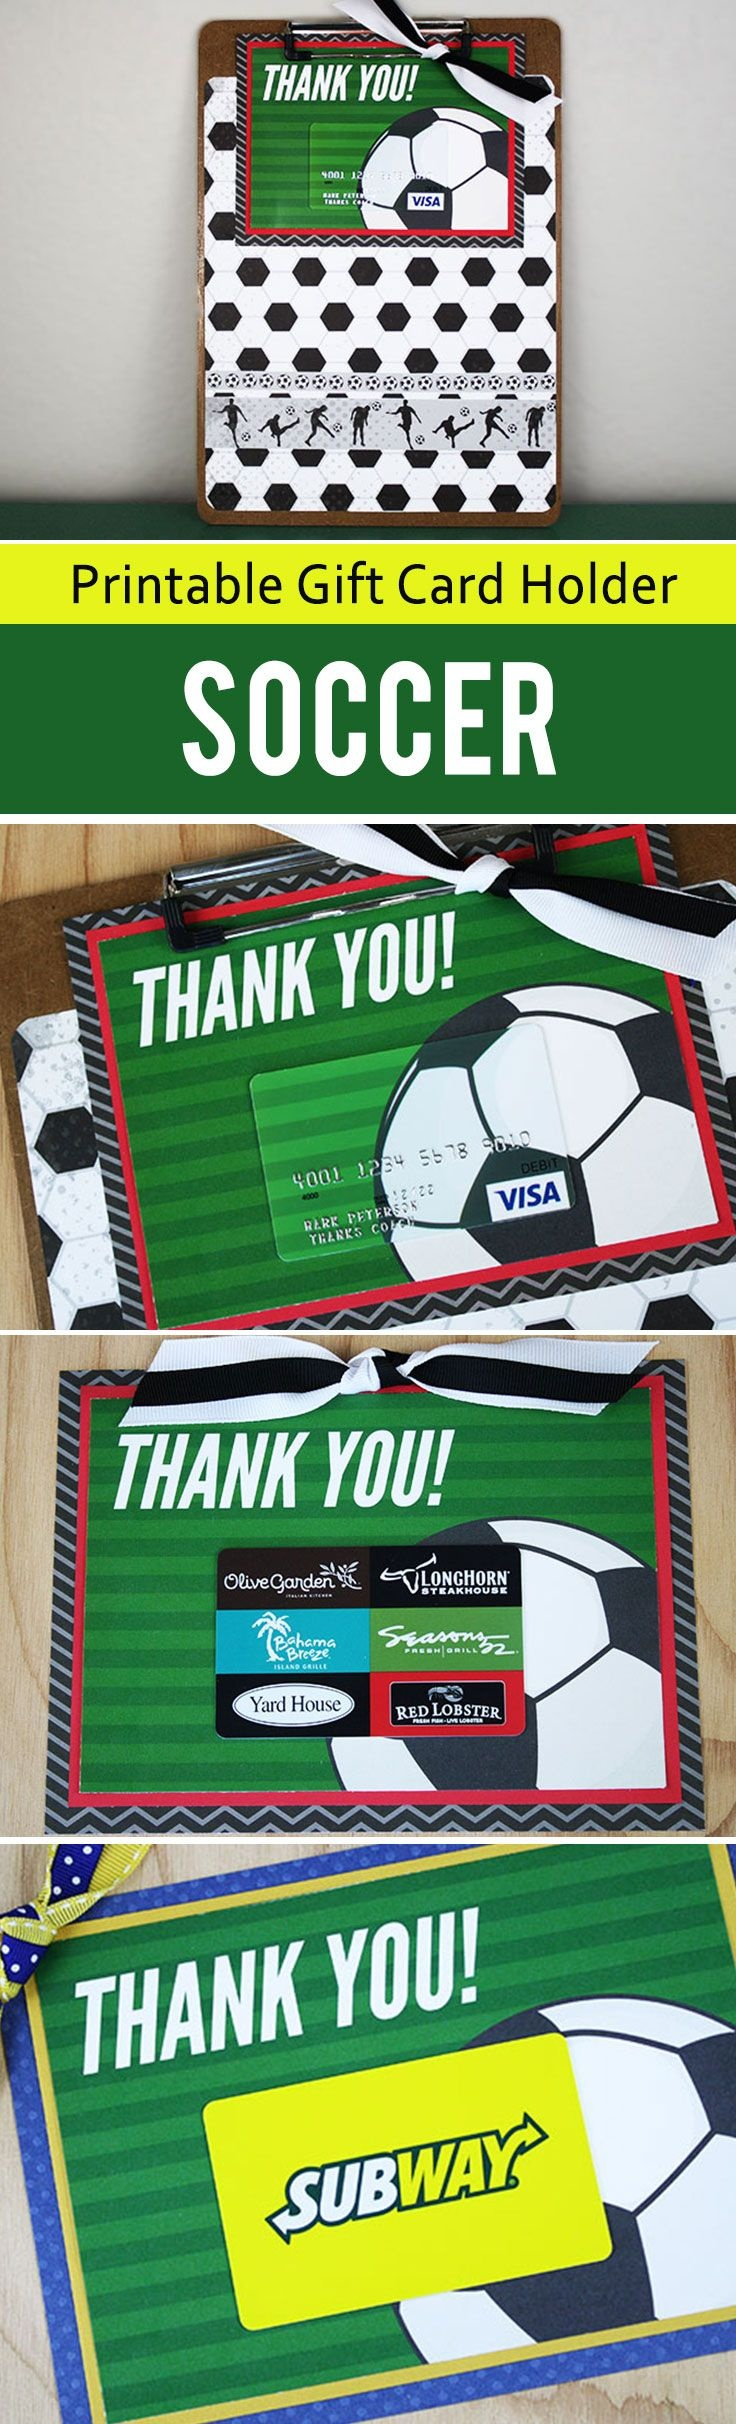 Free Printable} This Soccer Gift For Coach Is A Kick! | Thank You - Free Printable Soccer Thank You Cards